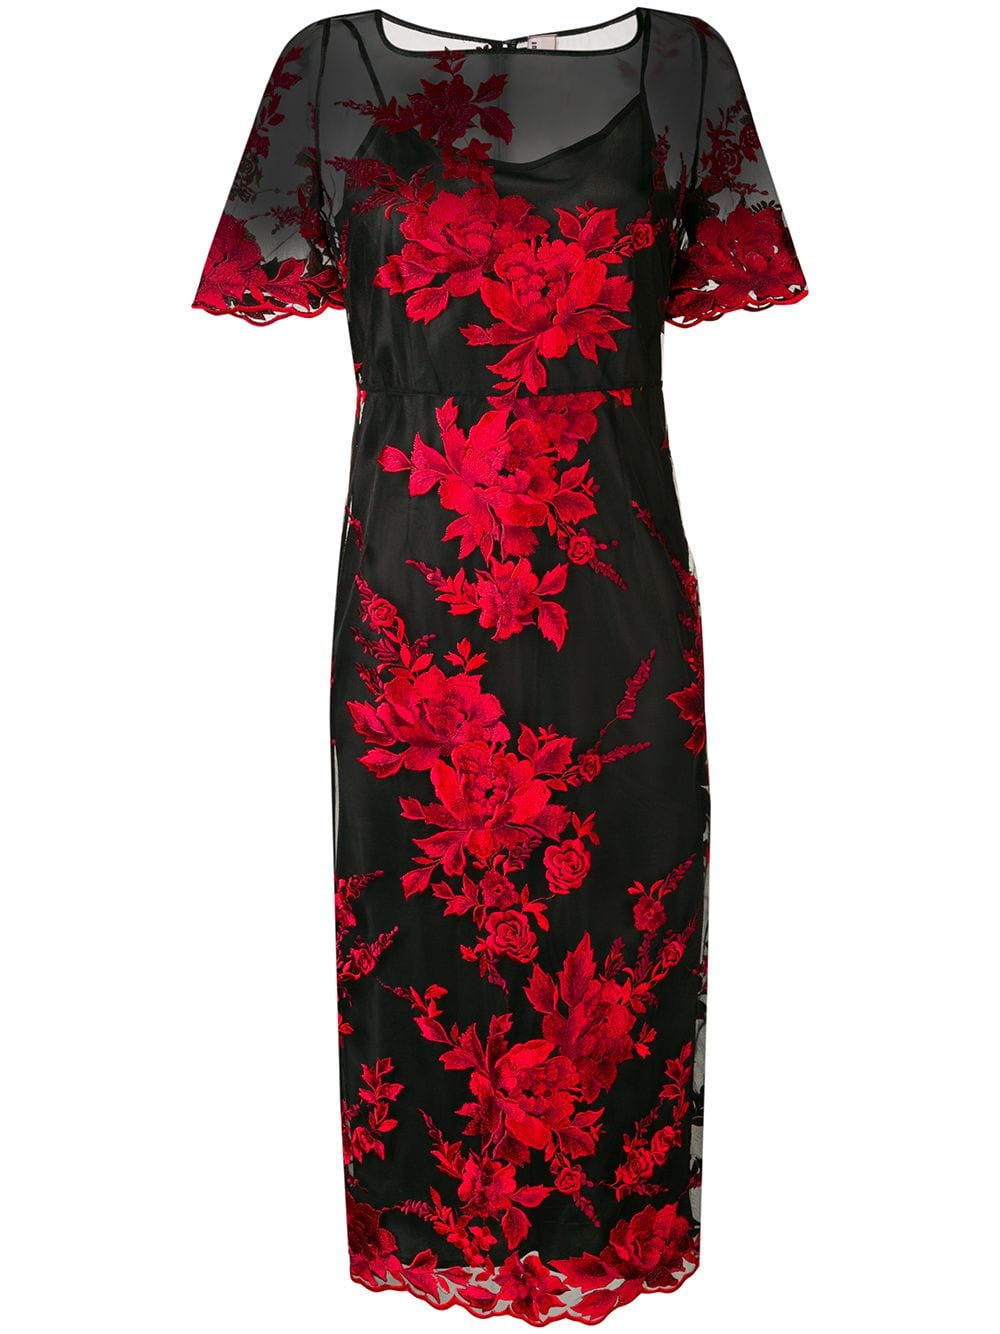 ANTONIO MARRAS Floral Embroidered Sheer Black Dress